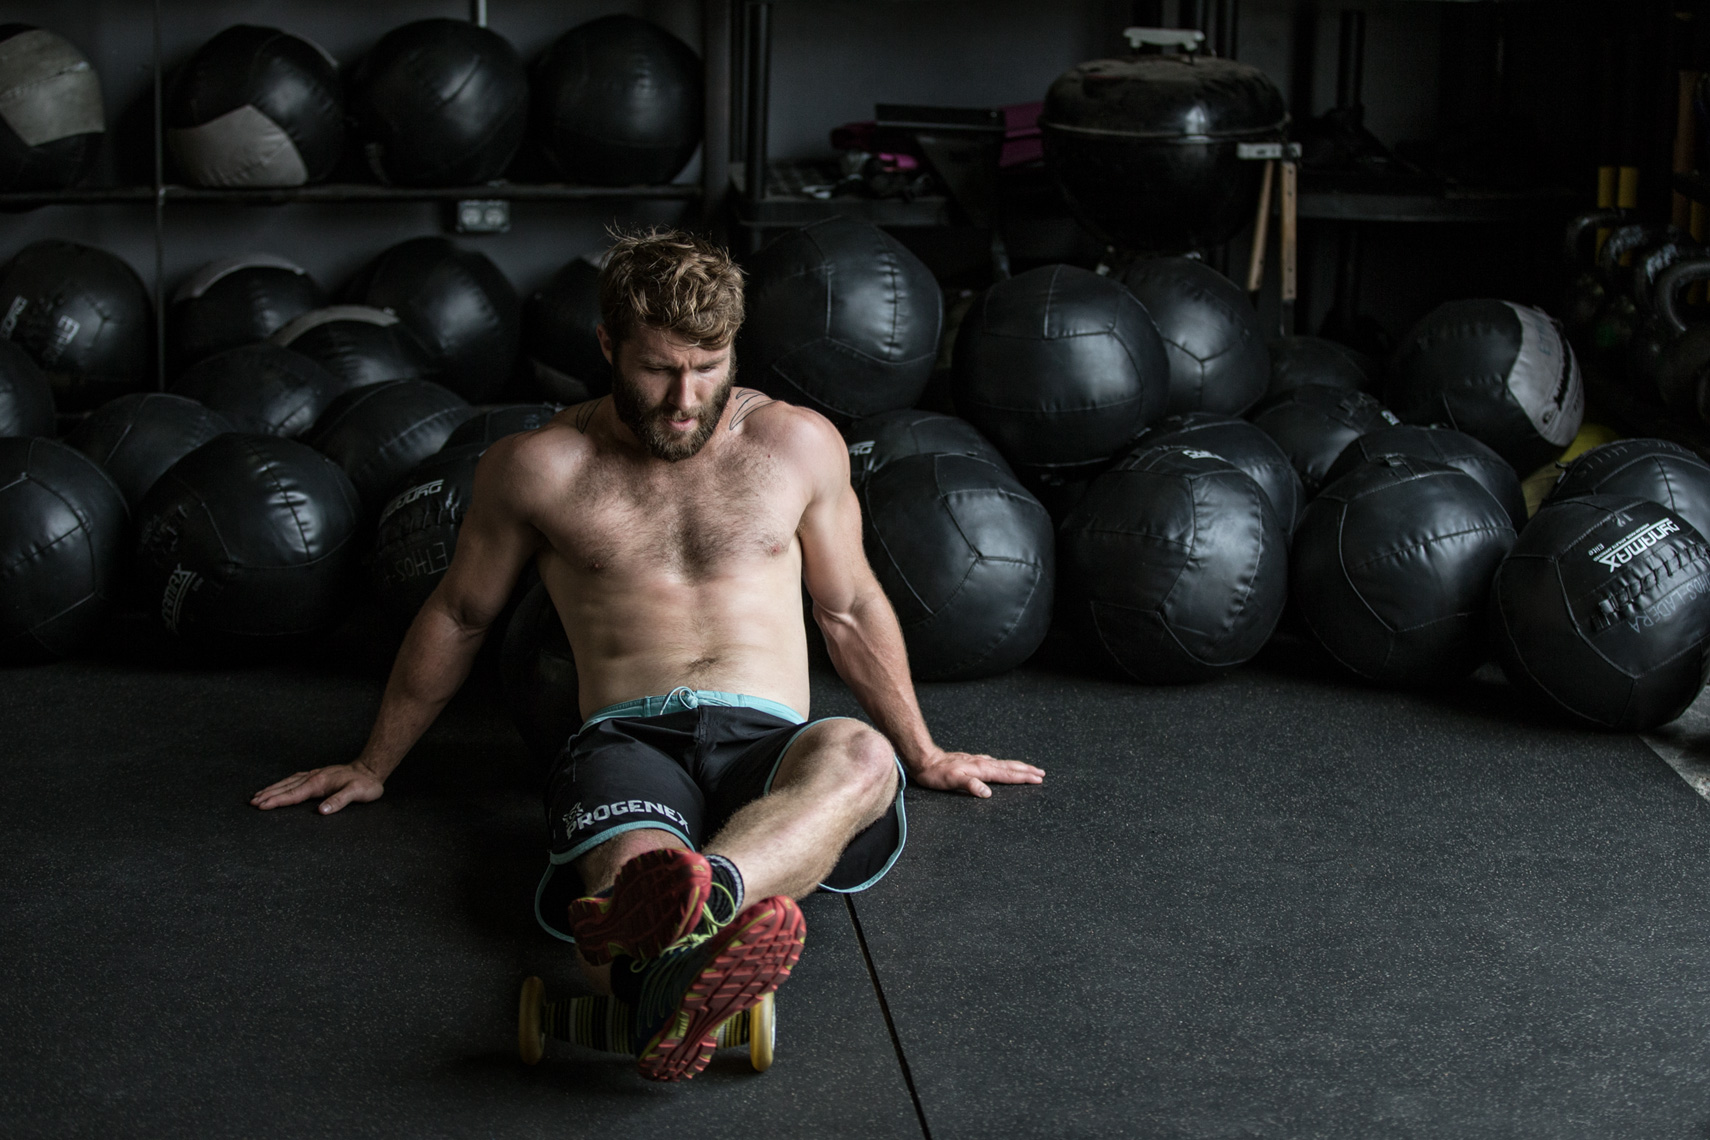 Los Angeles Sports Photography, Michael Brian, Pat Barber, Crossfit, Soulful portrait of Reebok Crossfit Games athlete, sitting against wall balls